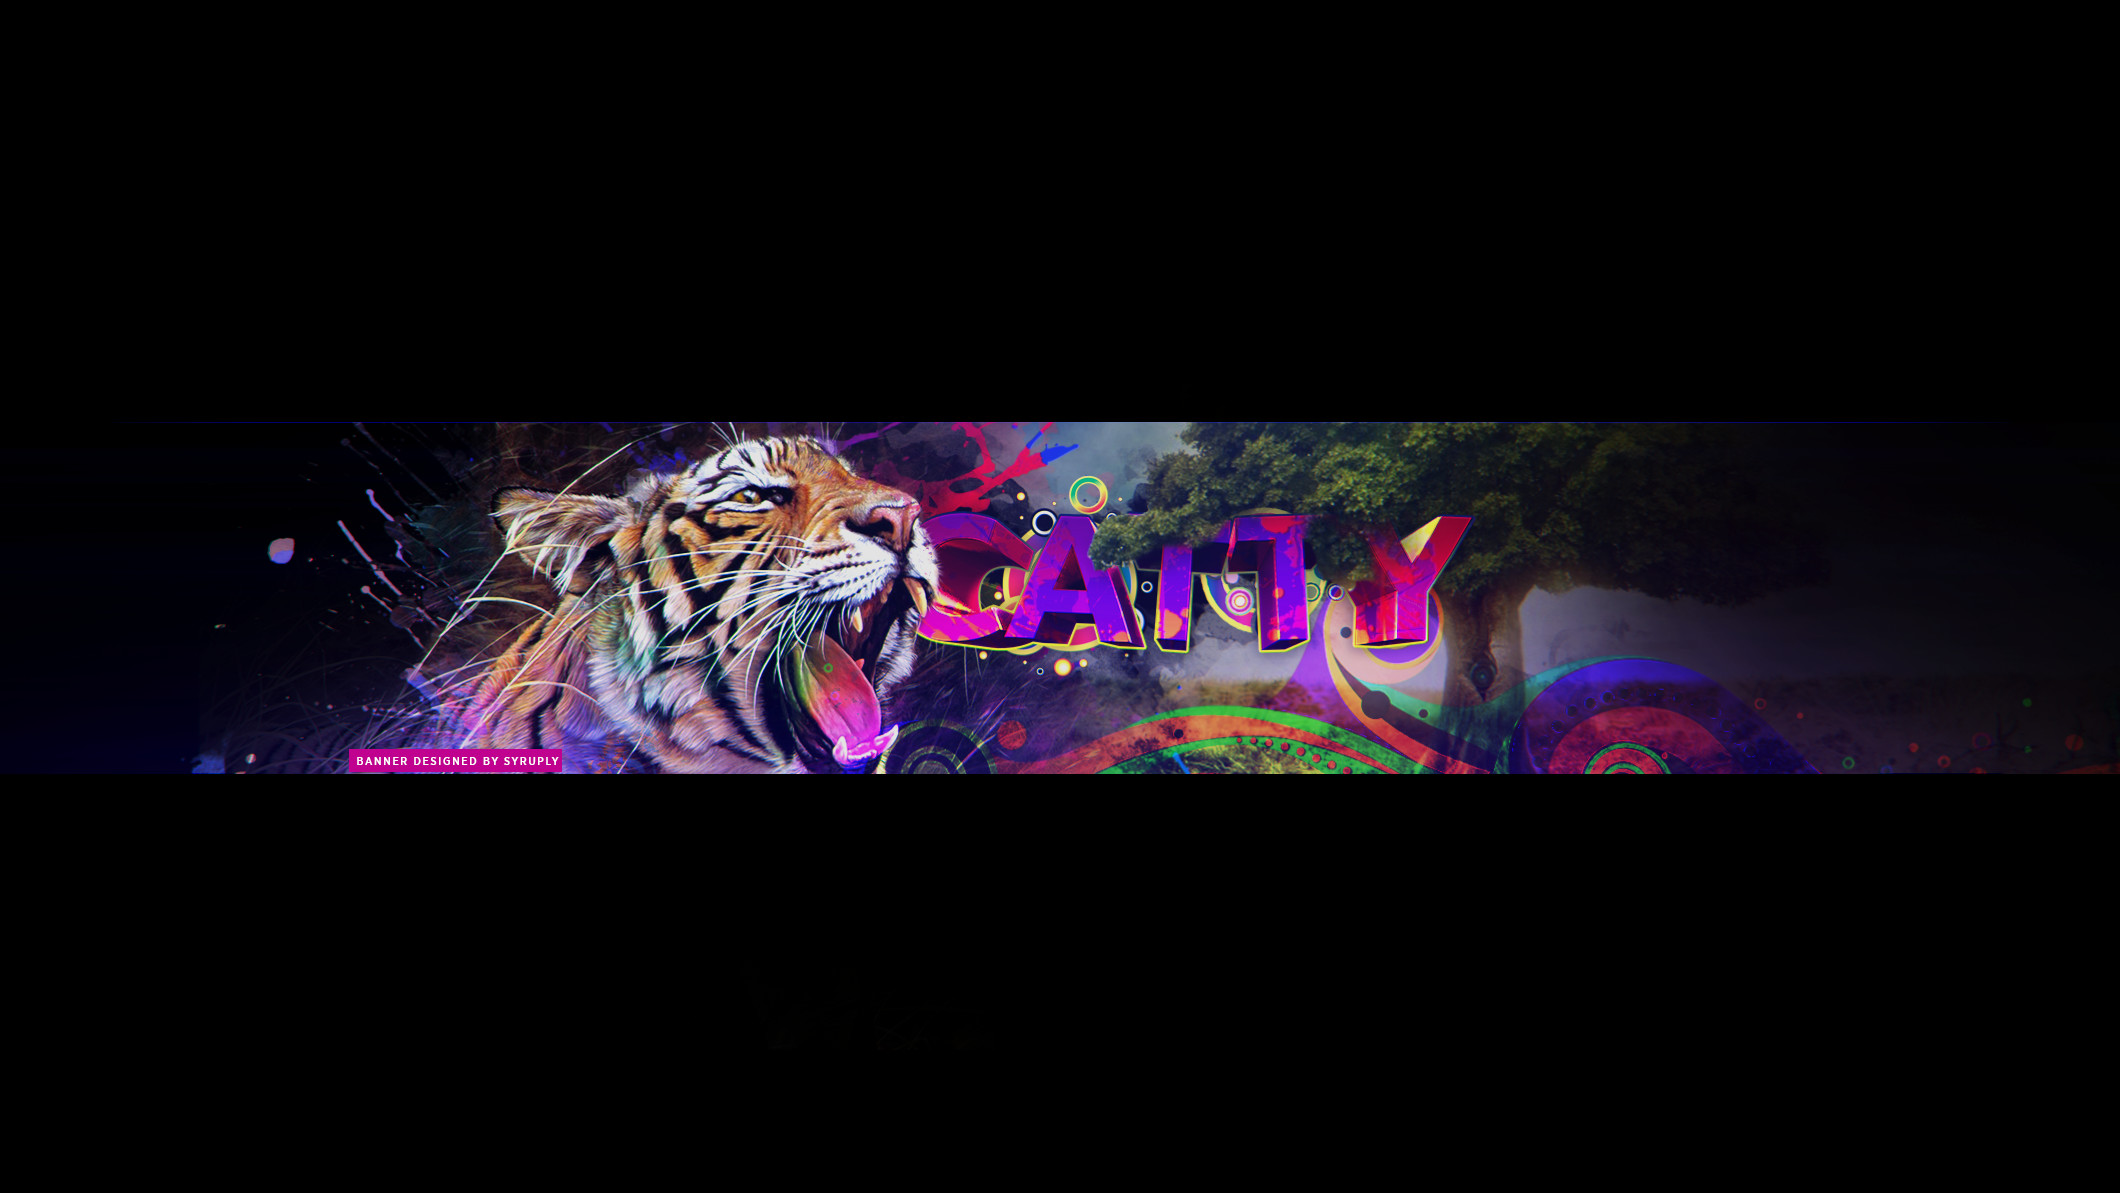 … Catty YouTube Banner (client) by Syruply